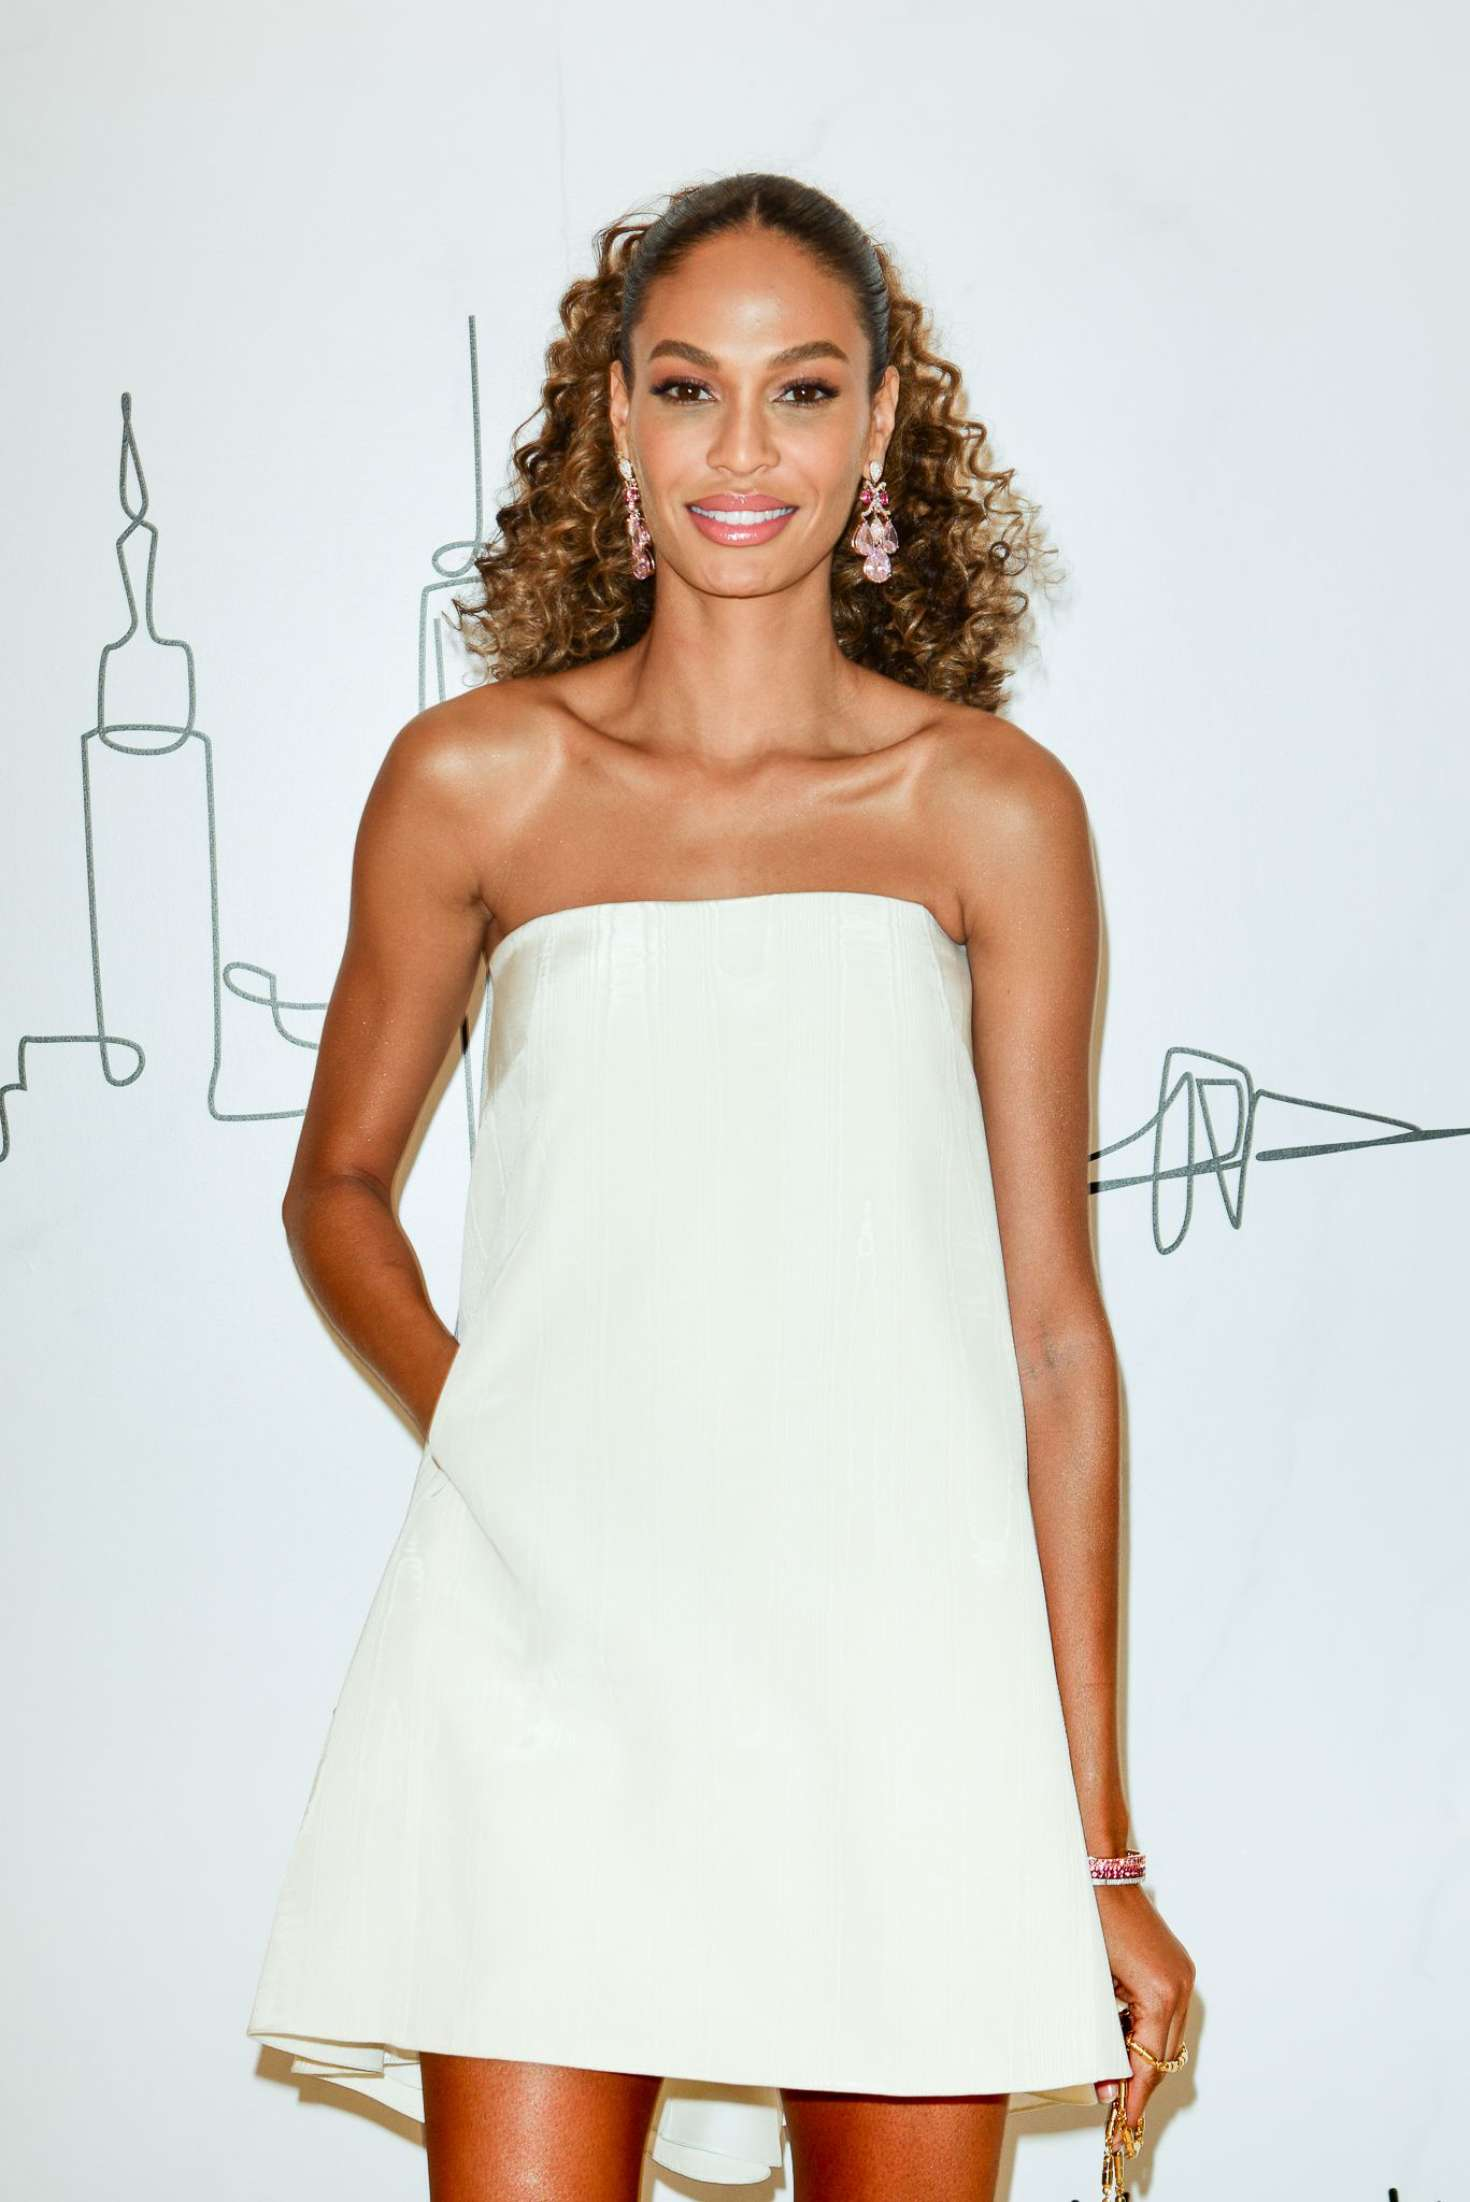 Joan Smalls - Neiman Marcus Hudson Yards Party in New York